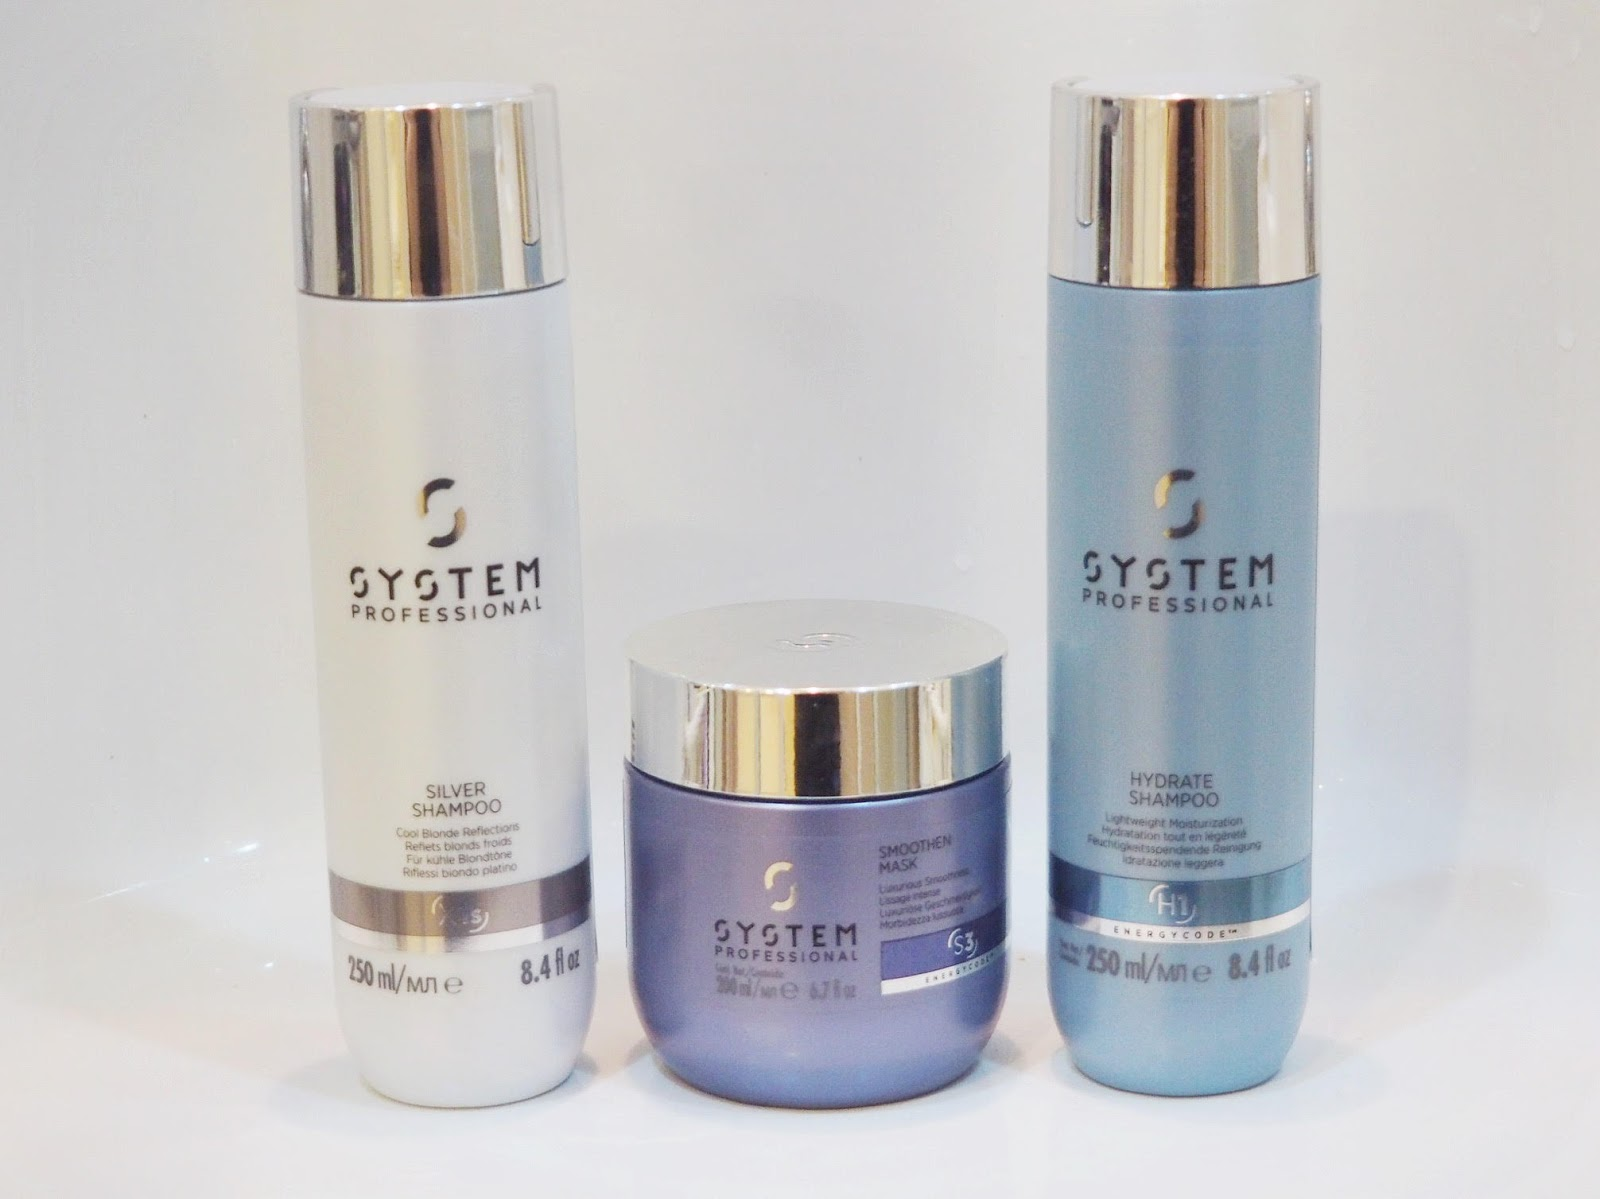 System Professional hair products